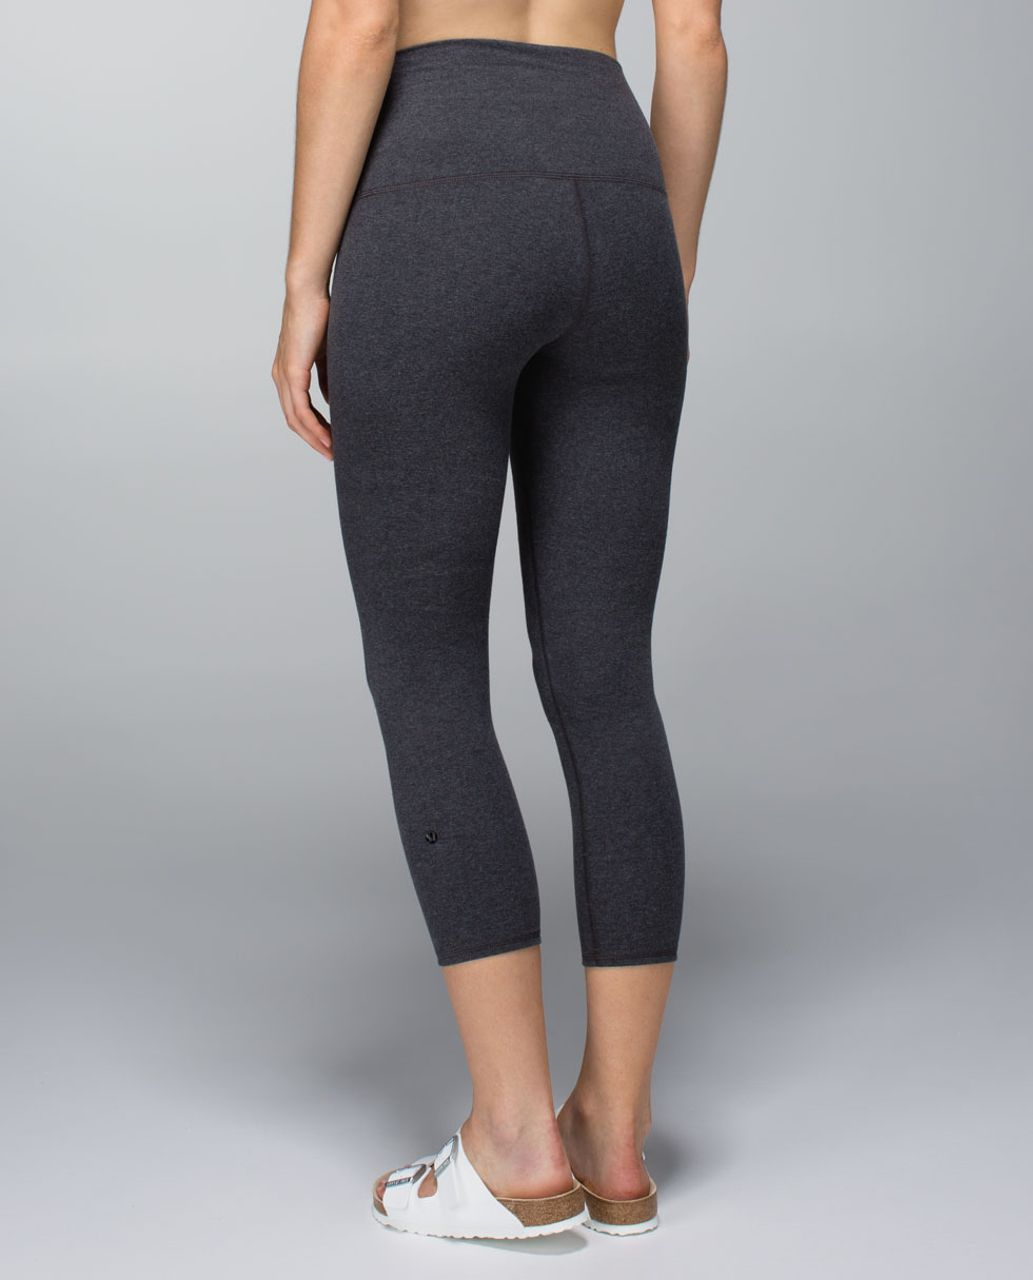 Lululemon Wunder Under Crop *Cotton (Roll Down) - Heathered Black